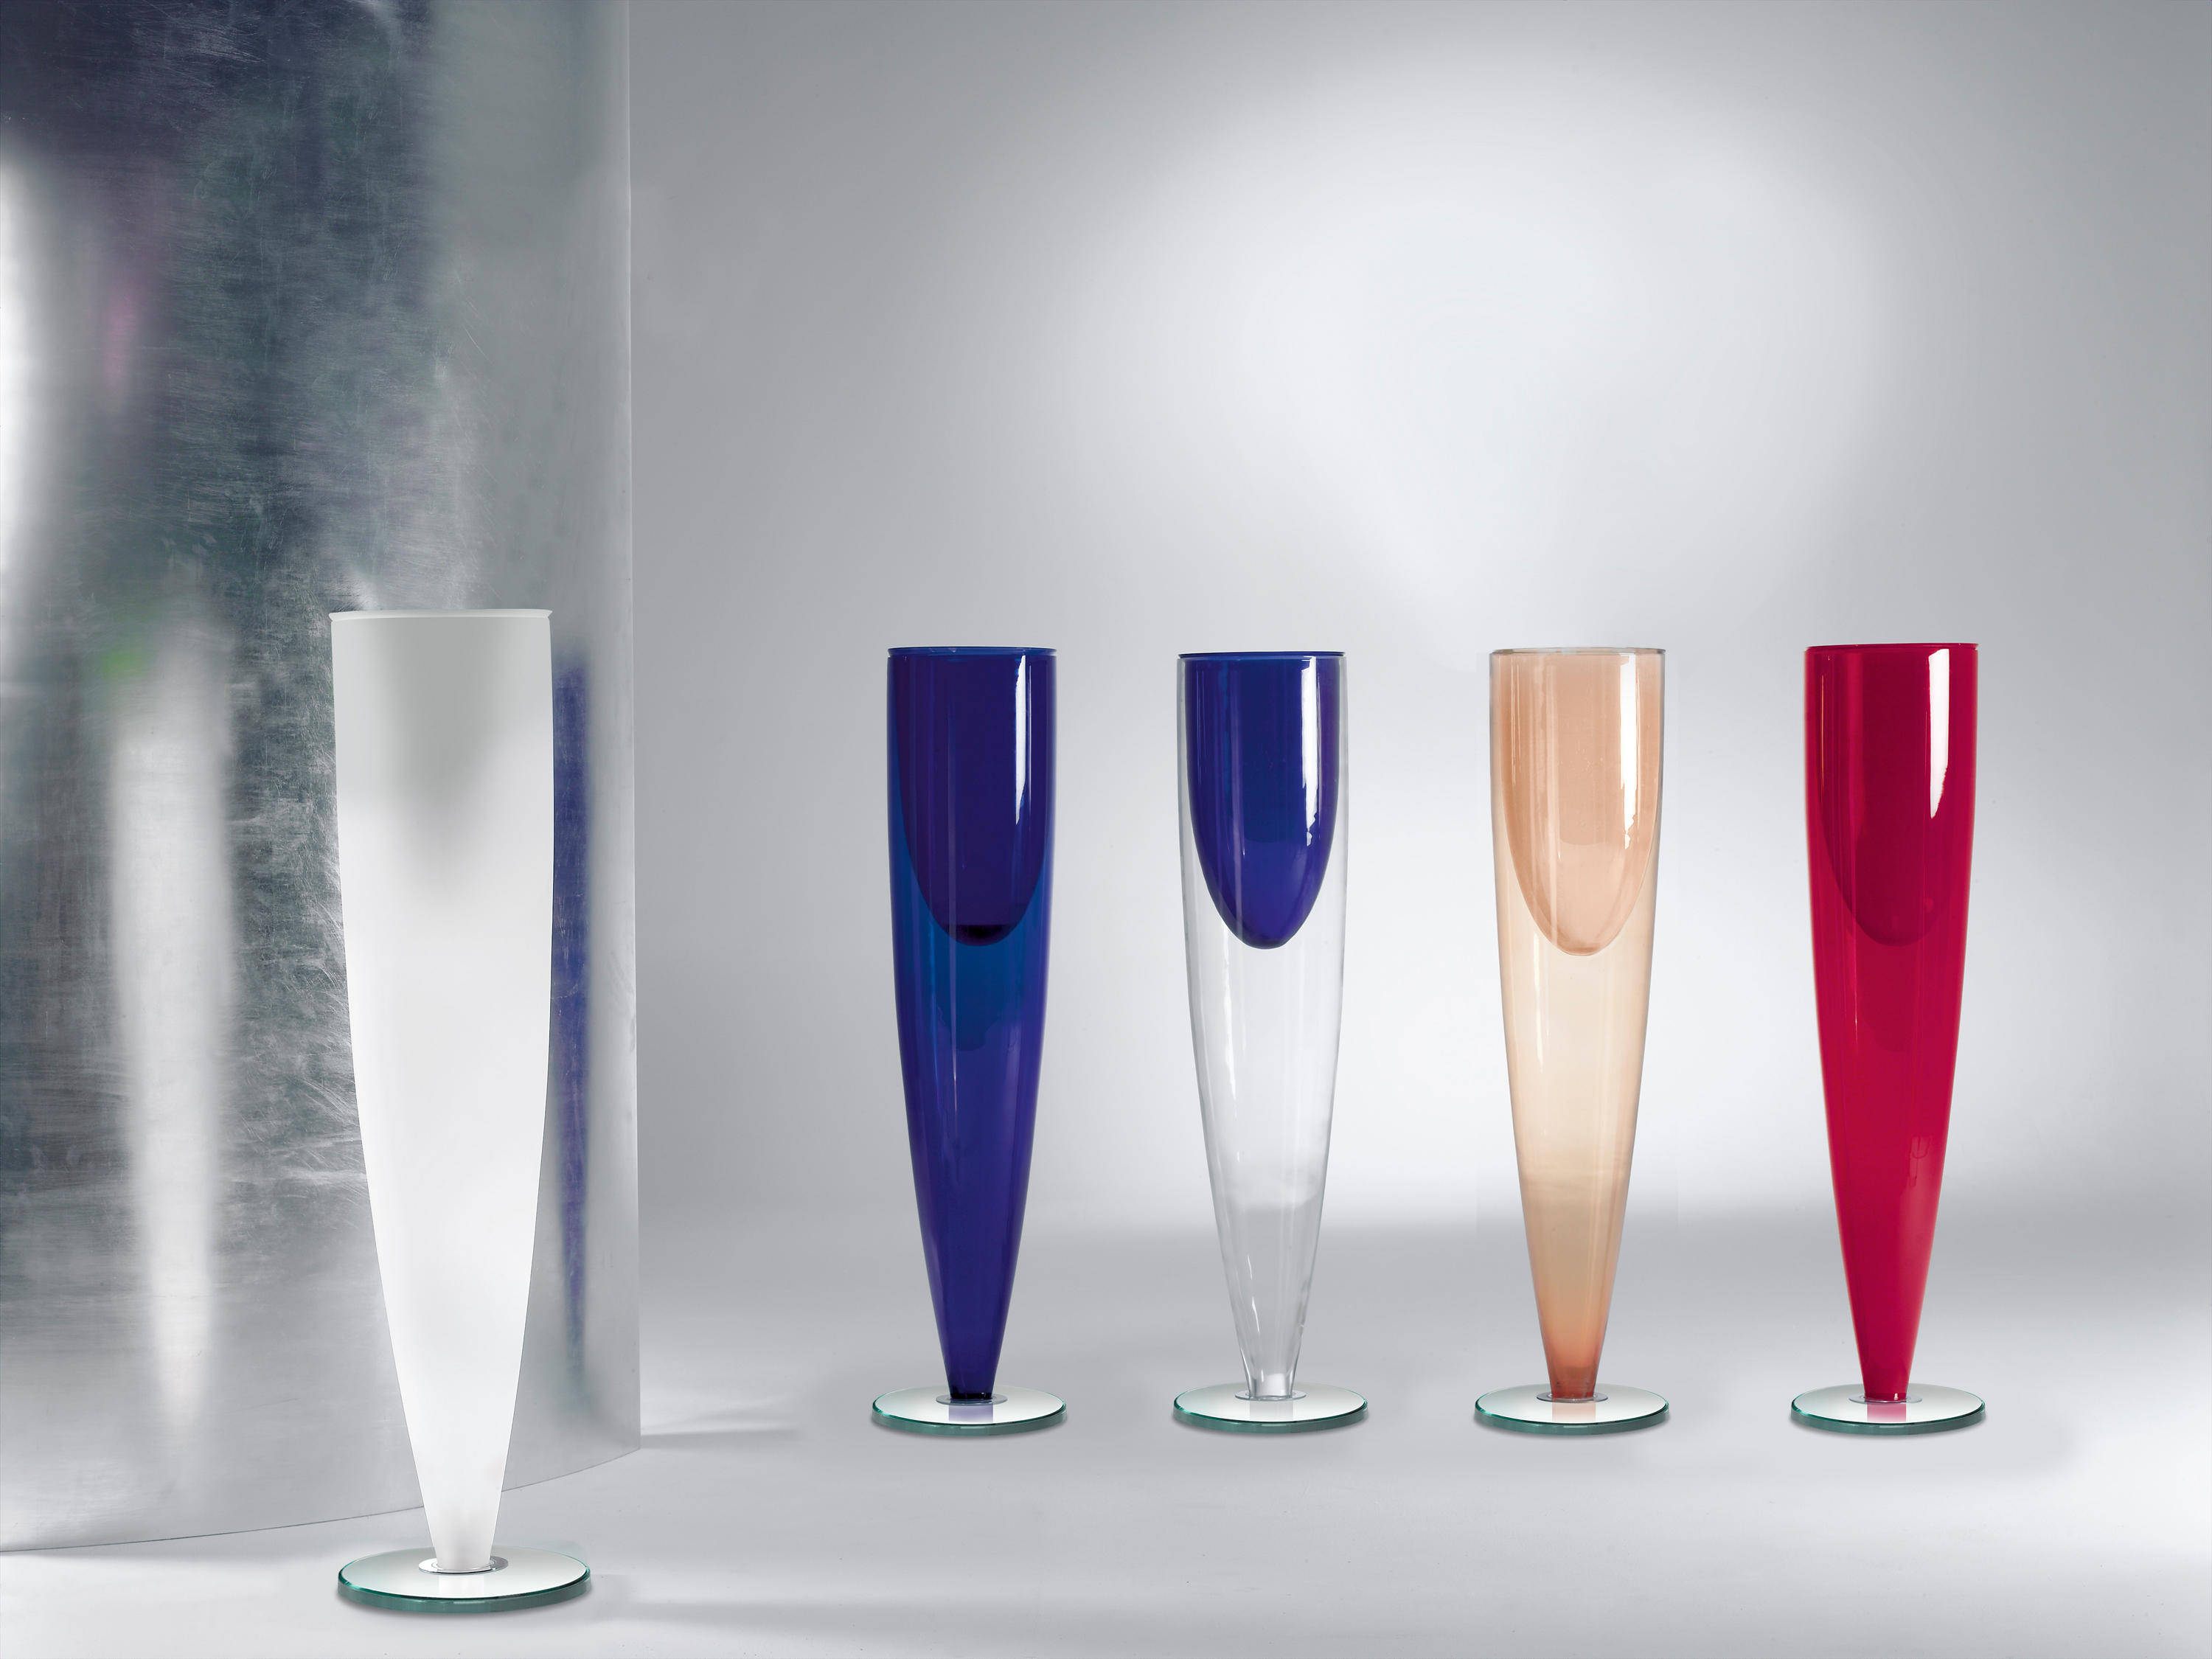 Ming Vase Vases From Reflex Architonic